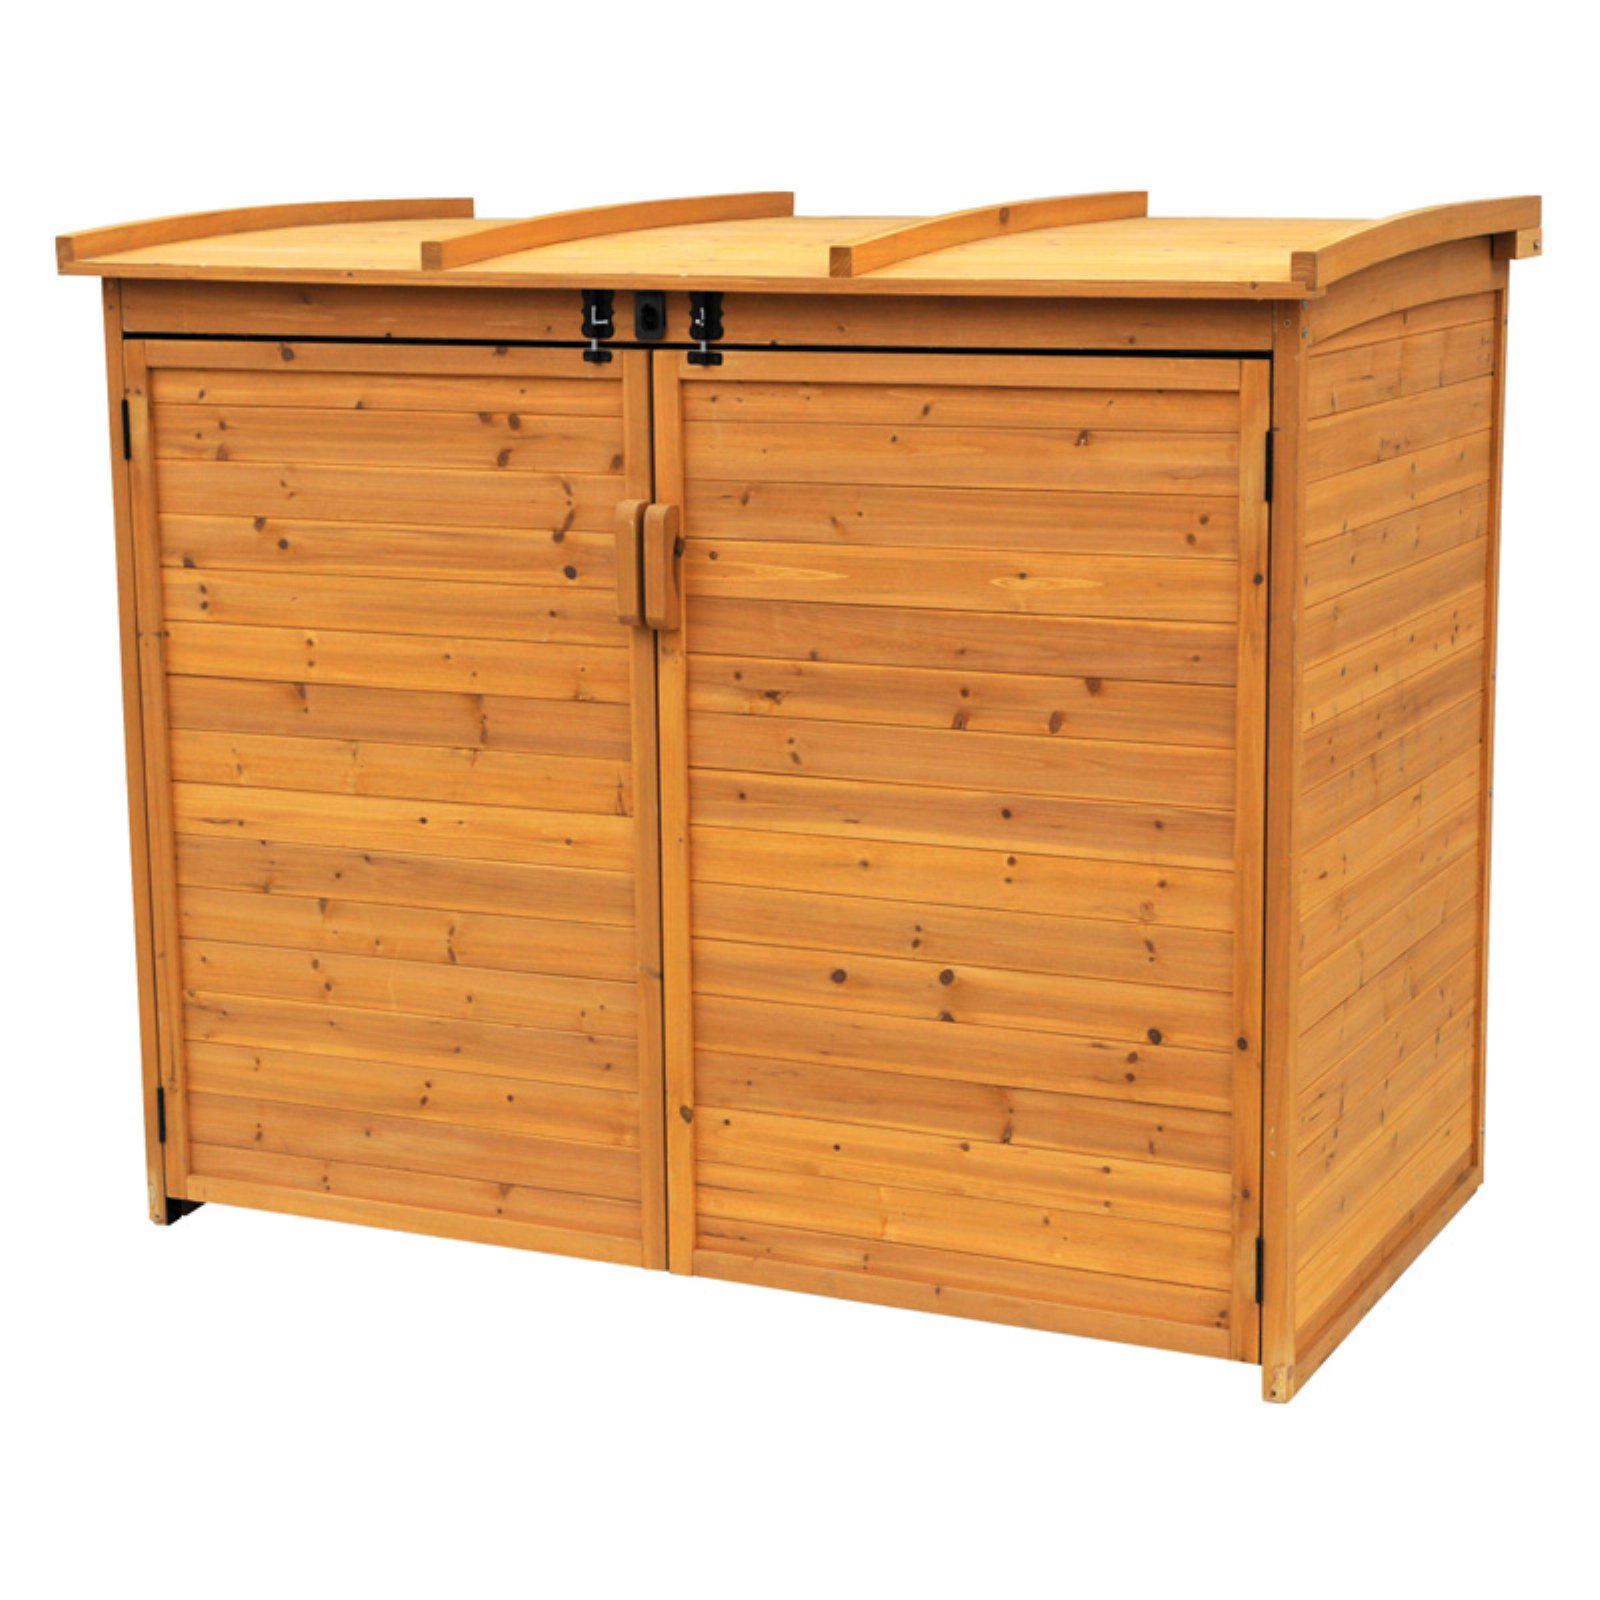 Leisure Season Large Horizontal Refuse Storage Shed, Medium Brown